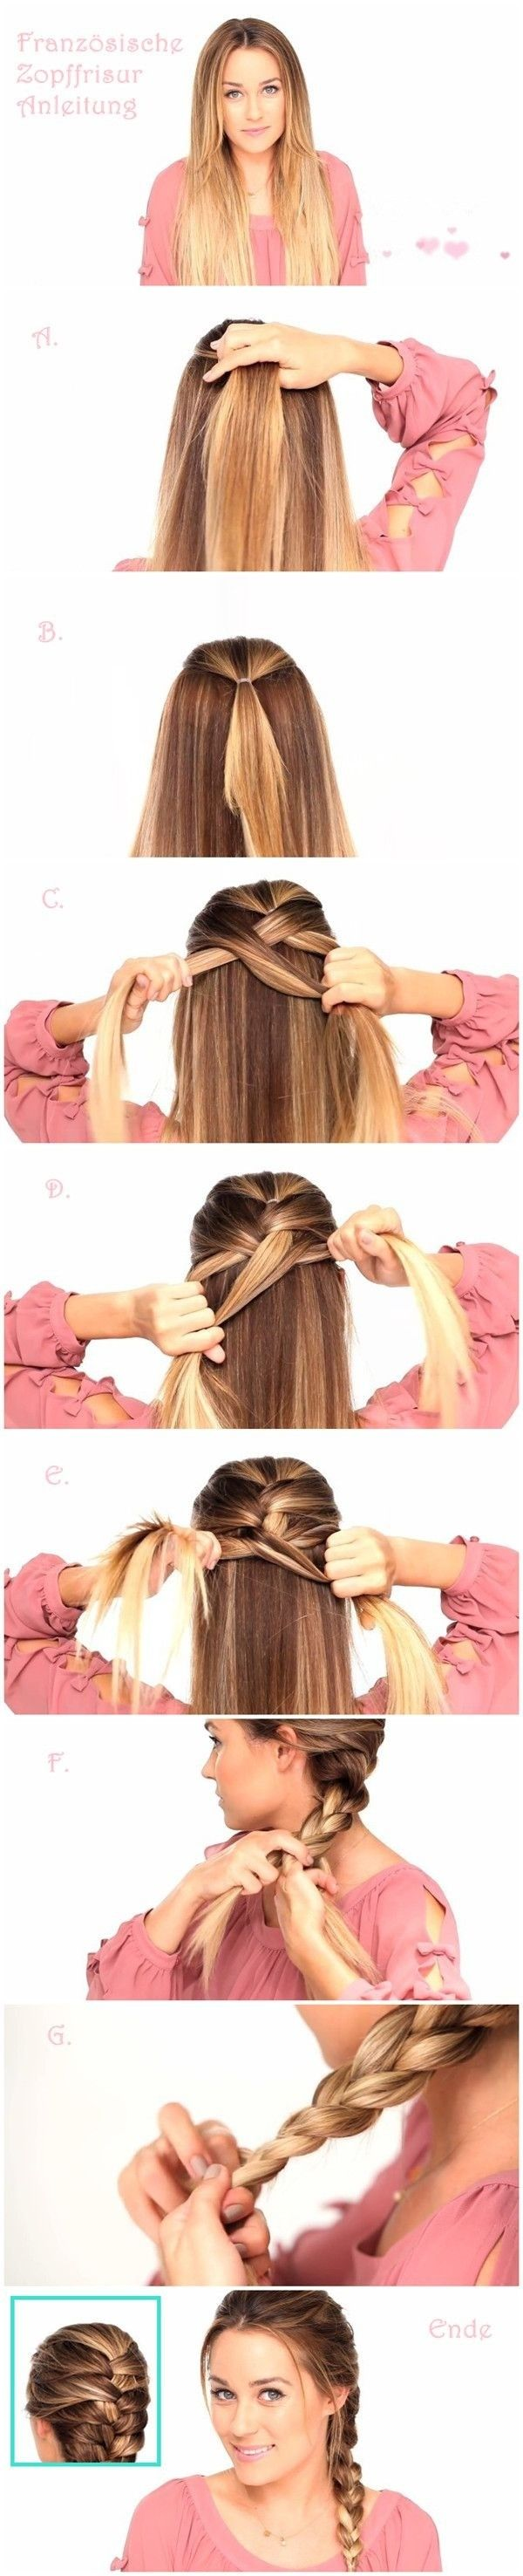 Swell 20 Cute And Easy Braided Hairstyle Tutorials Latest Styles Hairstyles For Women Draintrainus